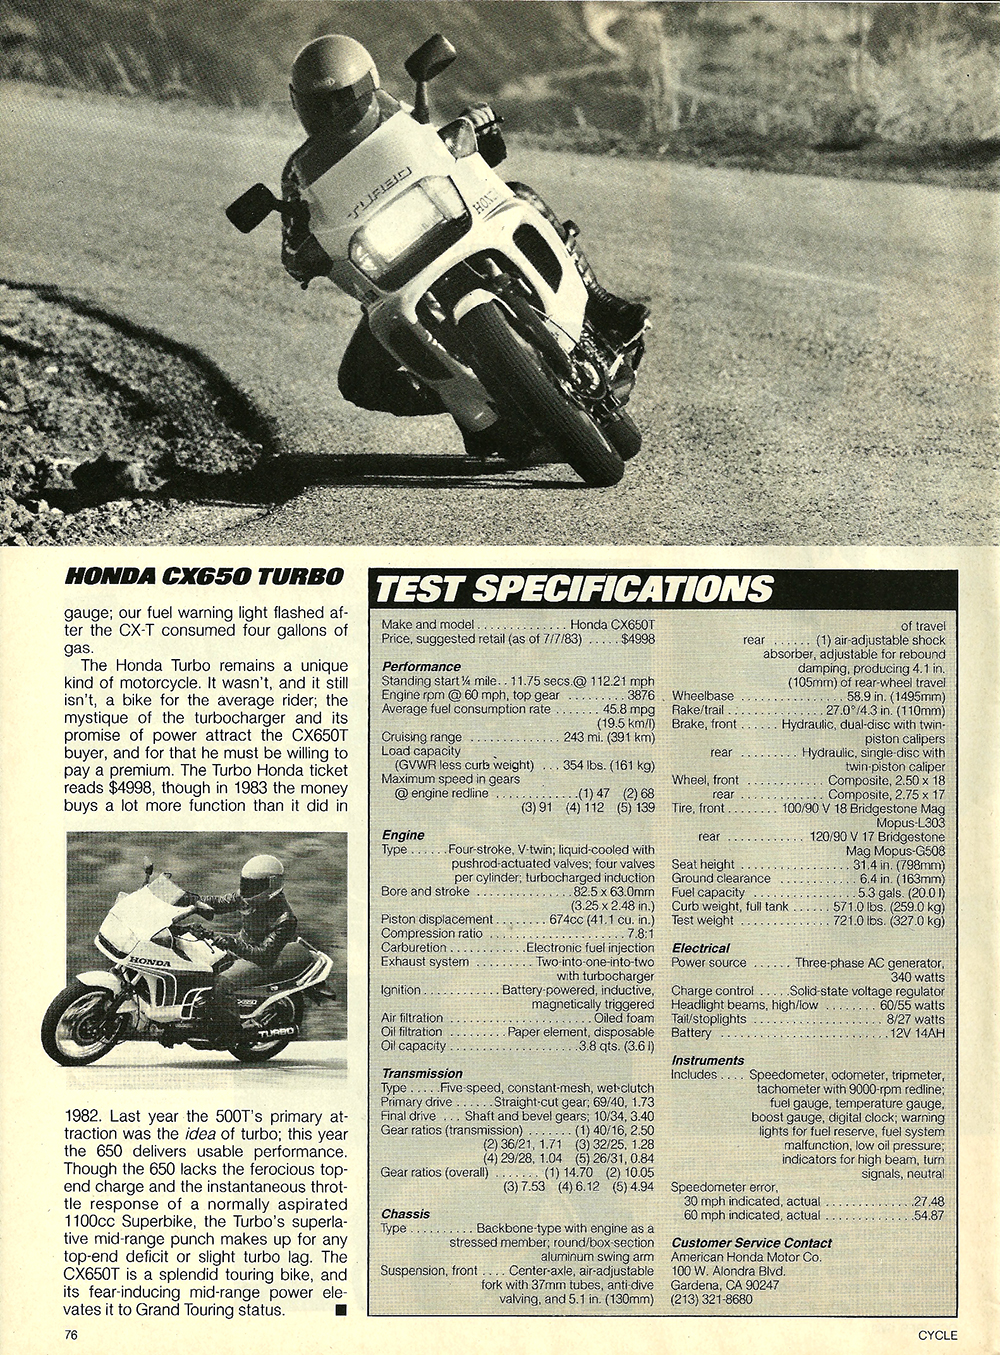 1983 Honda CX650 turbo road test 7.jpg